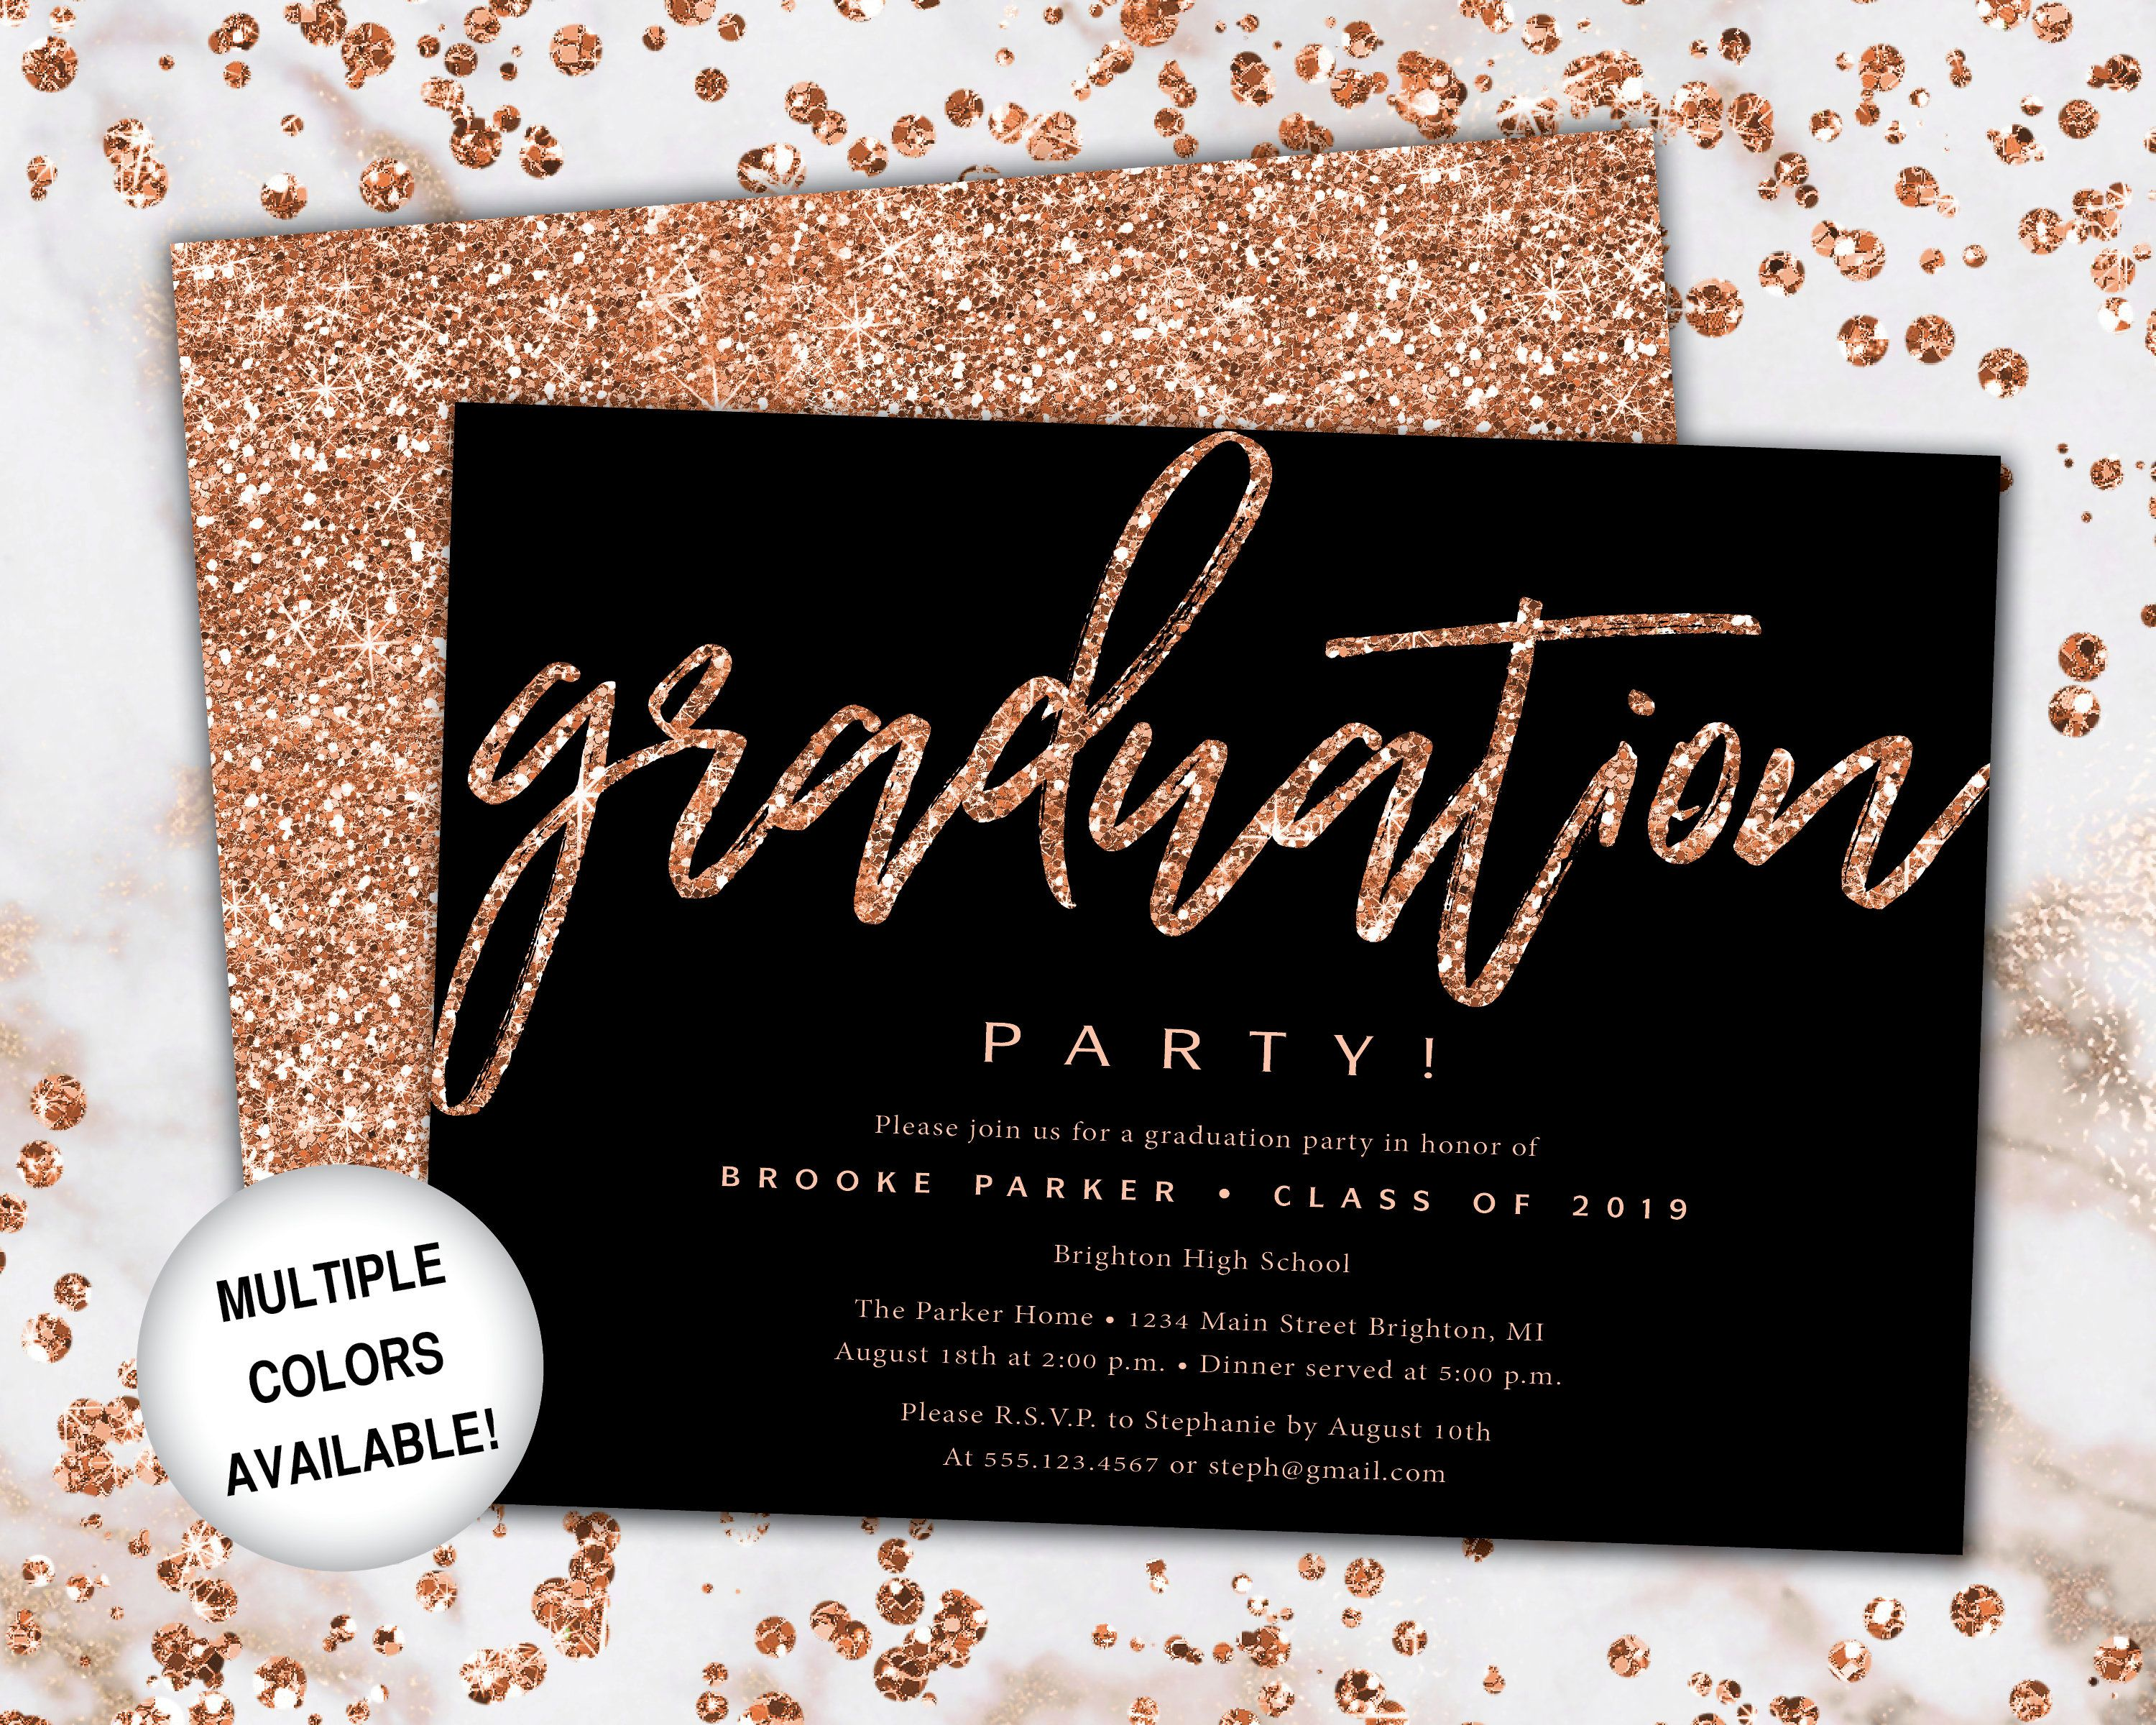 Rose Gold and Black Graduation Party Invitation Rose Gold | Etsy | Rose  gold invitations, Graduation party invitations, Grad party invitations